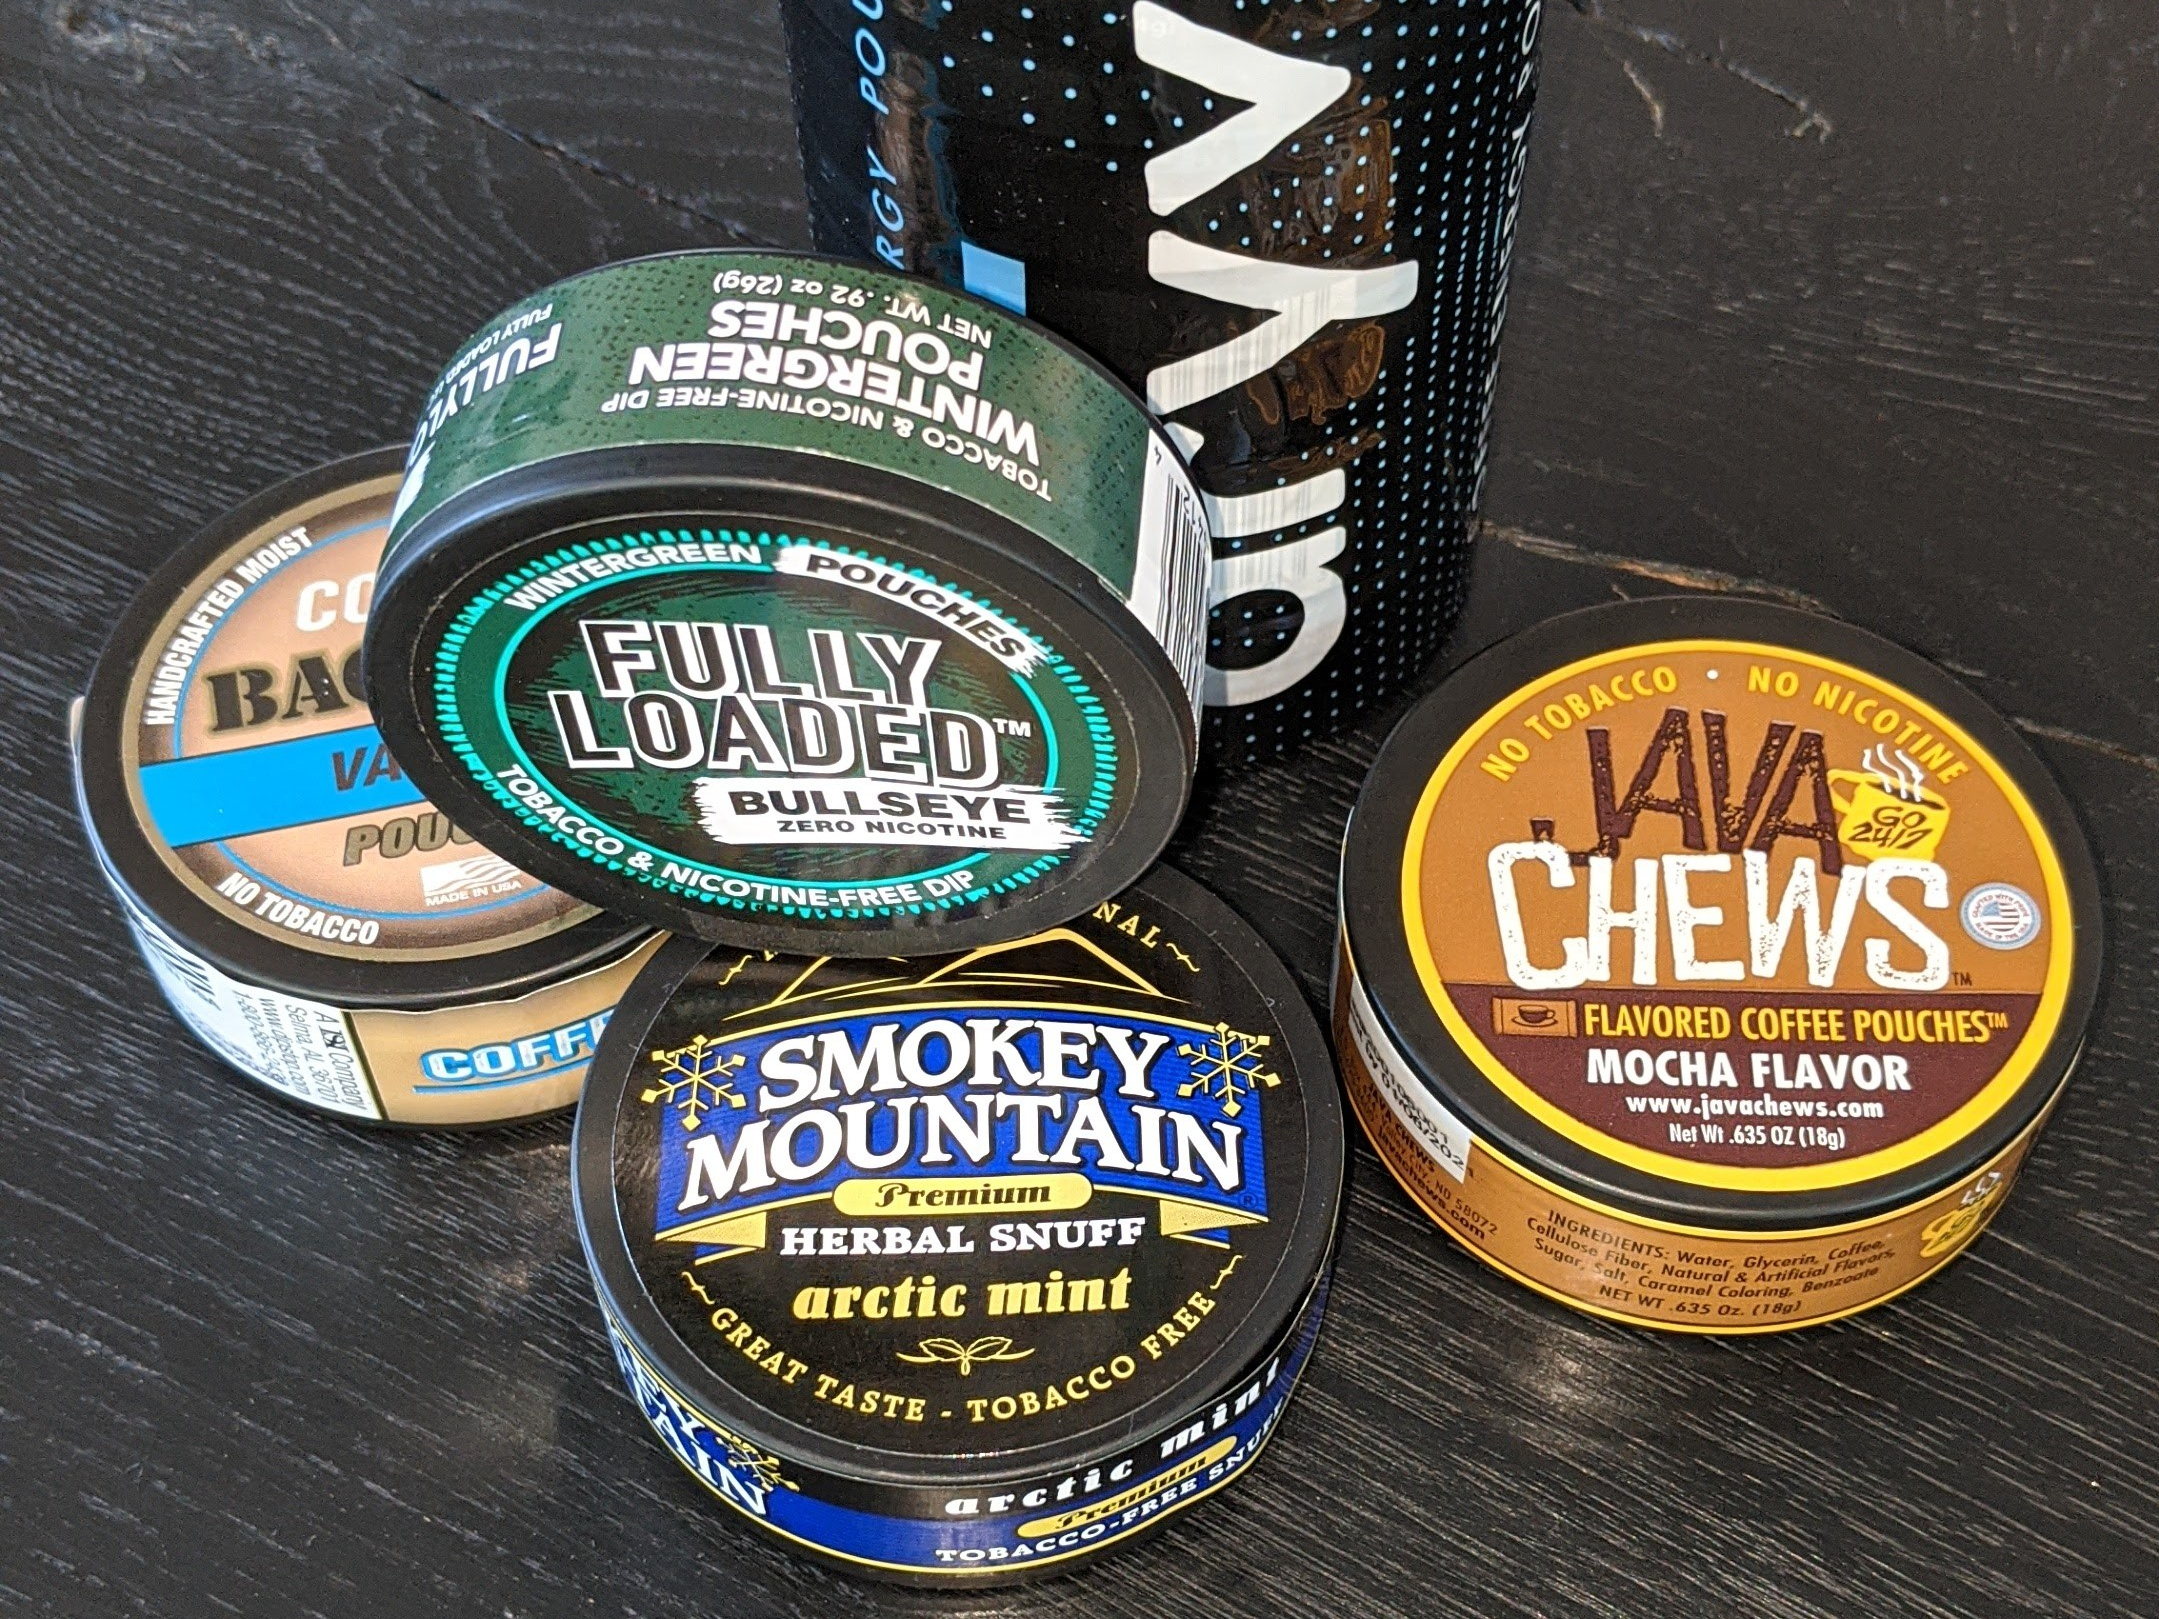 Plastic Dip Chew Cans And Tins For Alternative Smokeless Non-Tobacco Products